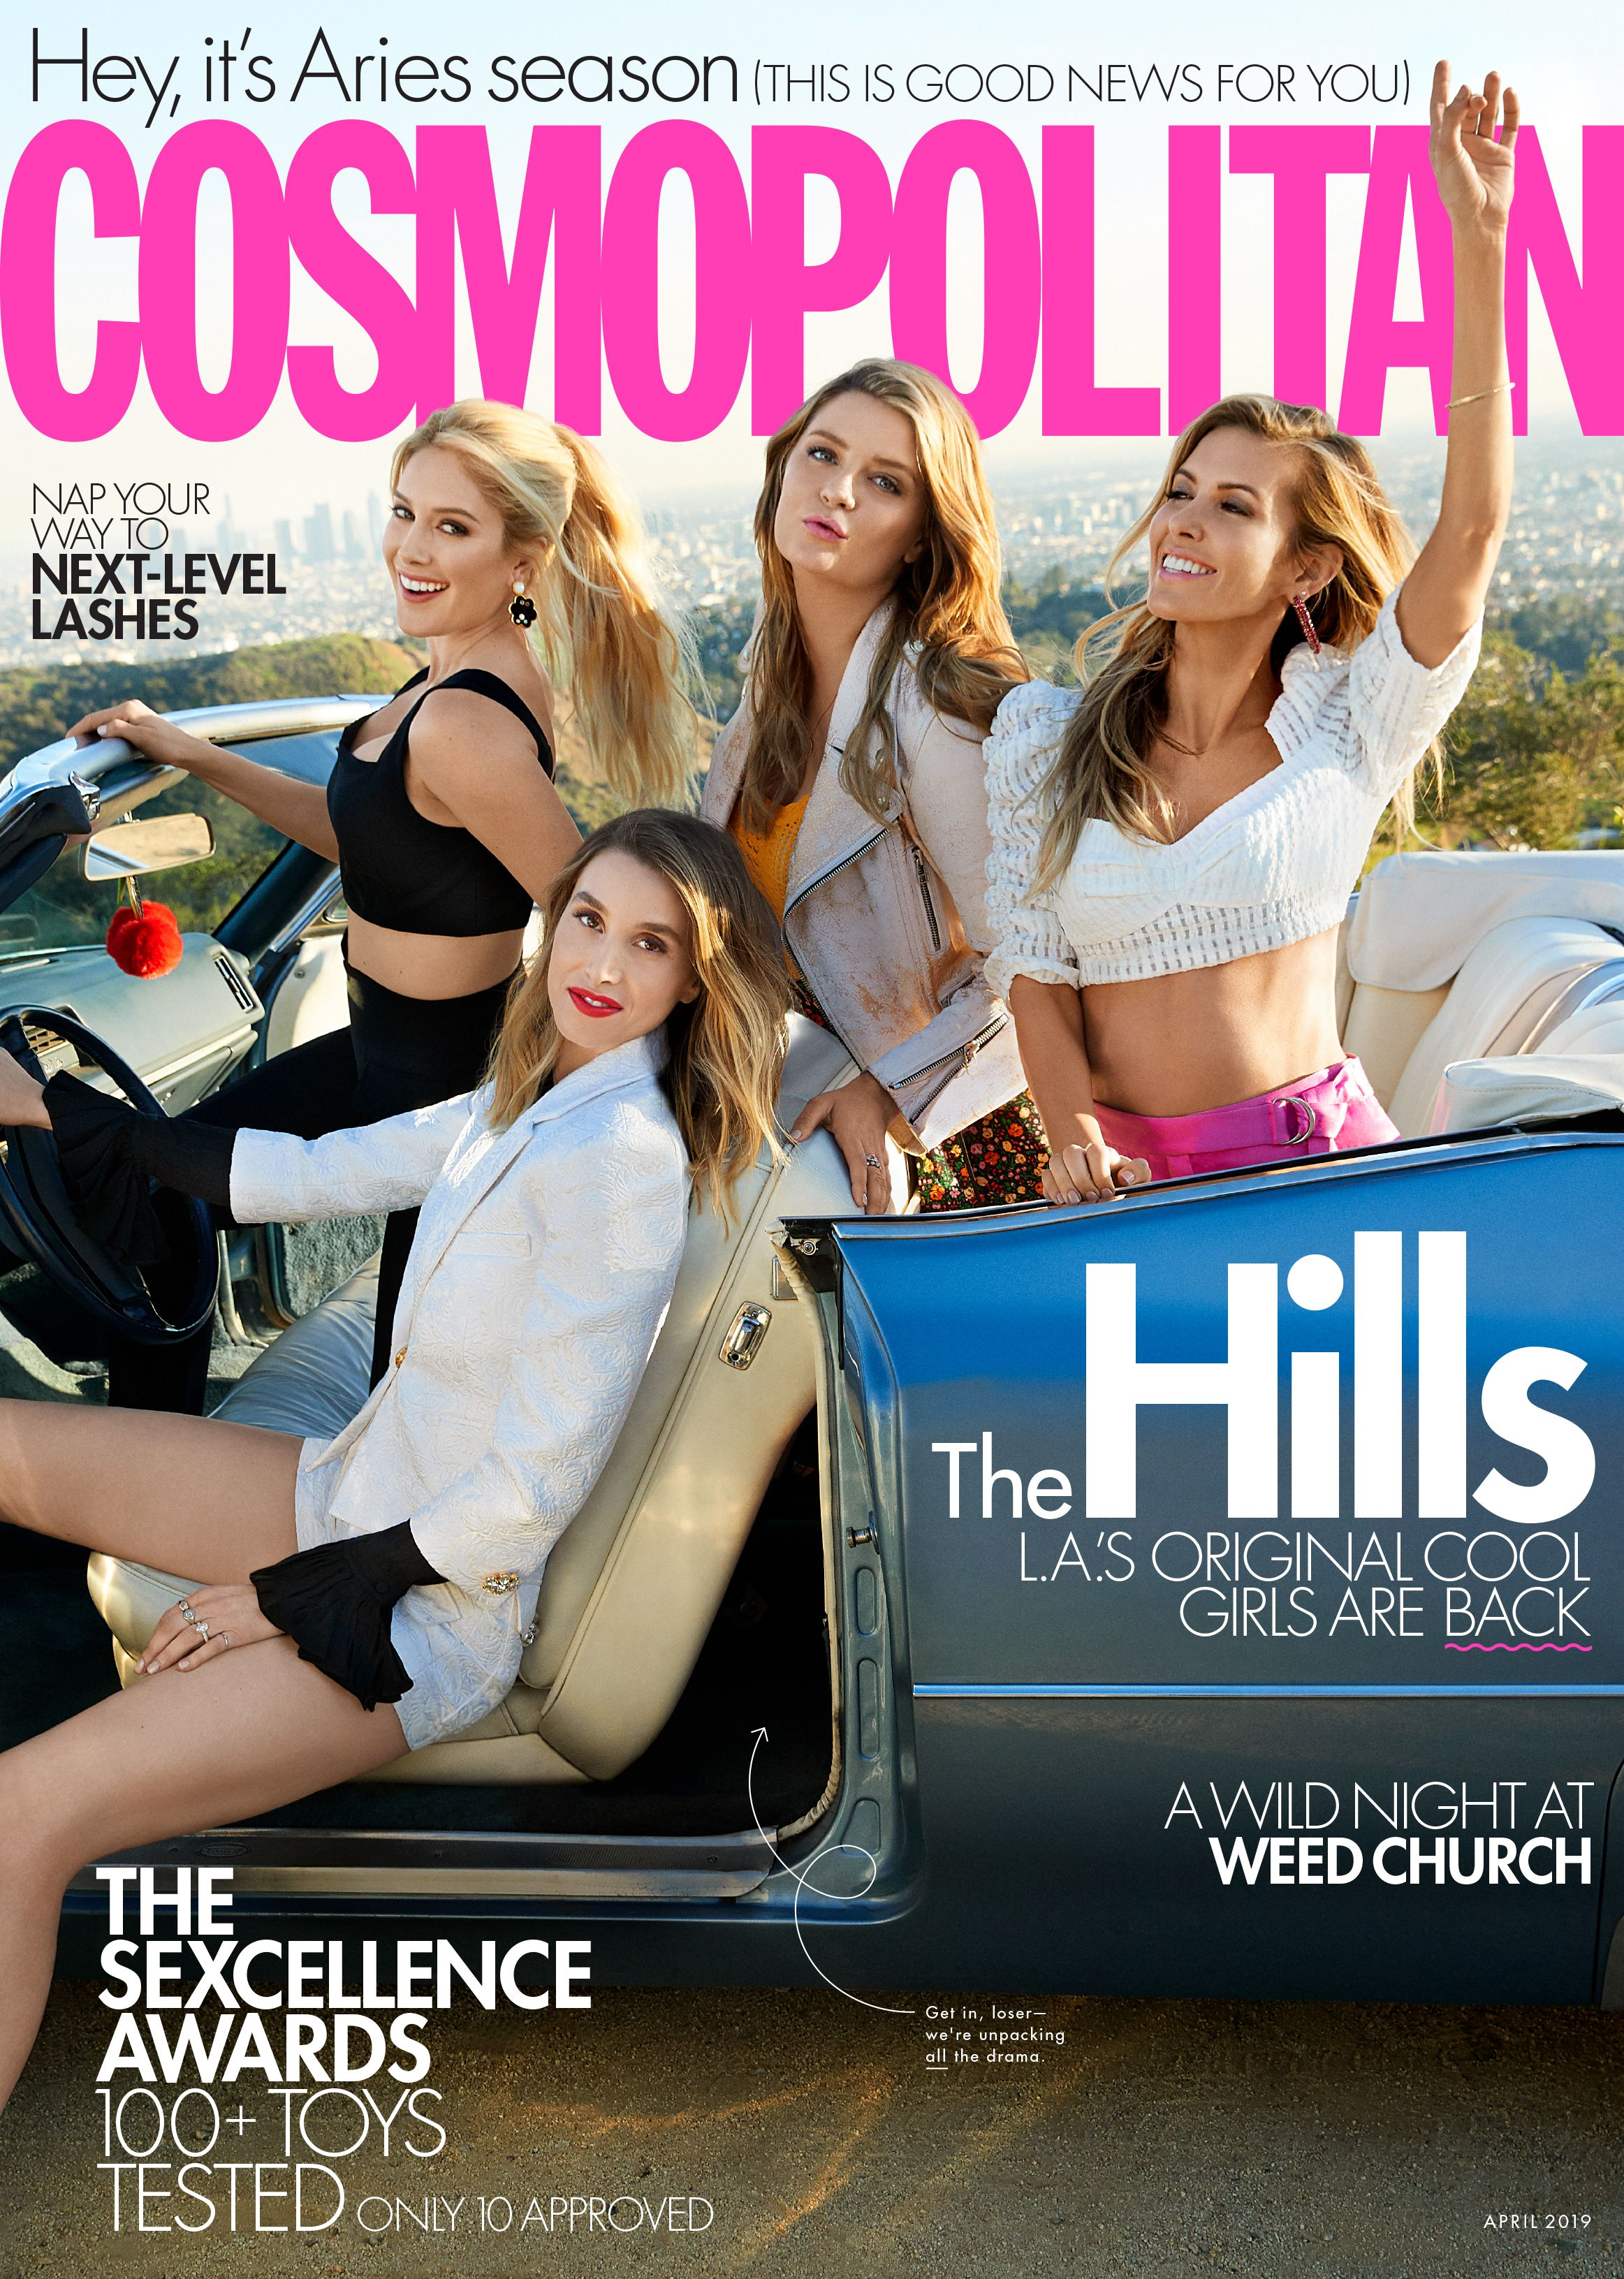 Exclusive: The Cast of 'The Hills' in Their First Tell-All About the Upcoming Reboot